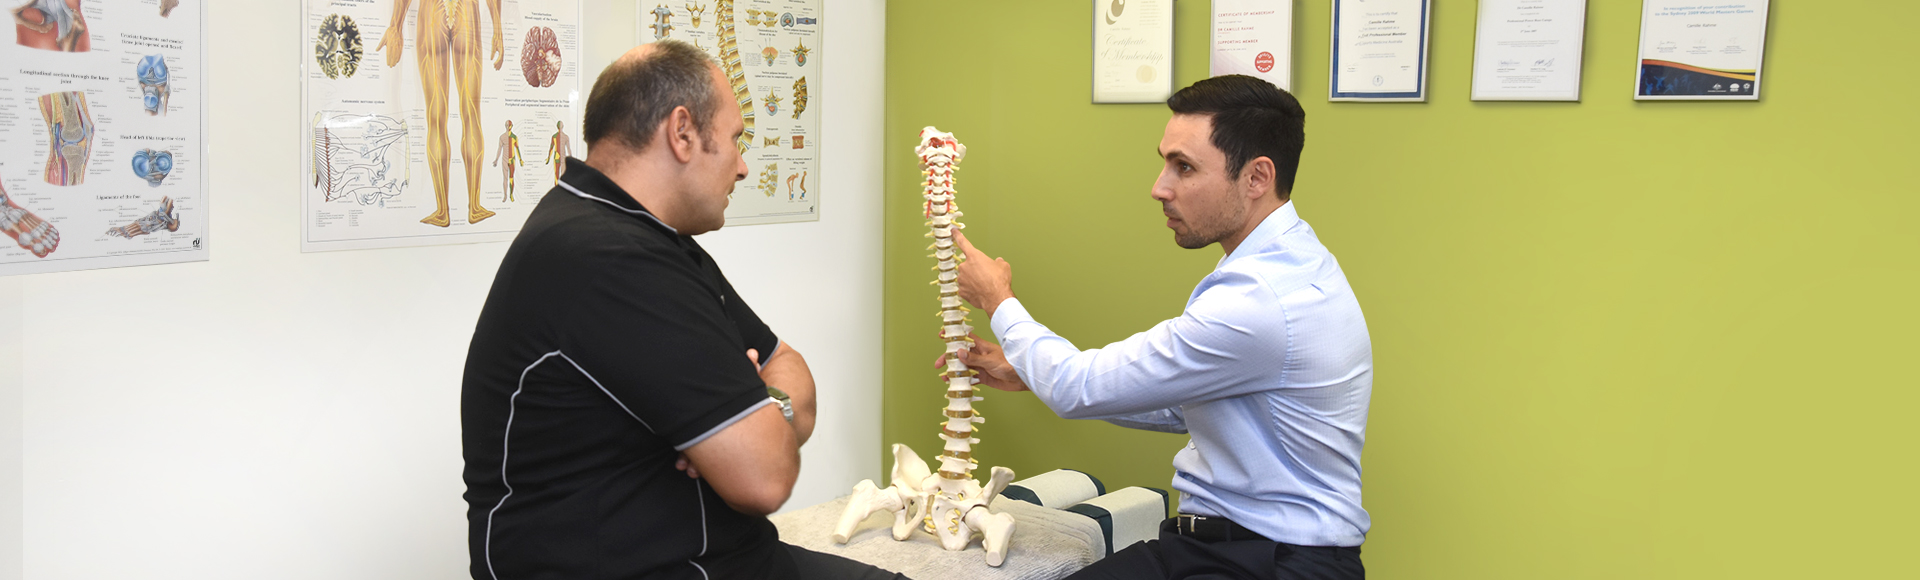 Dr Camille Chiropractor